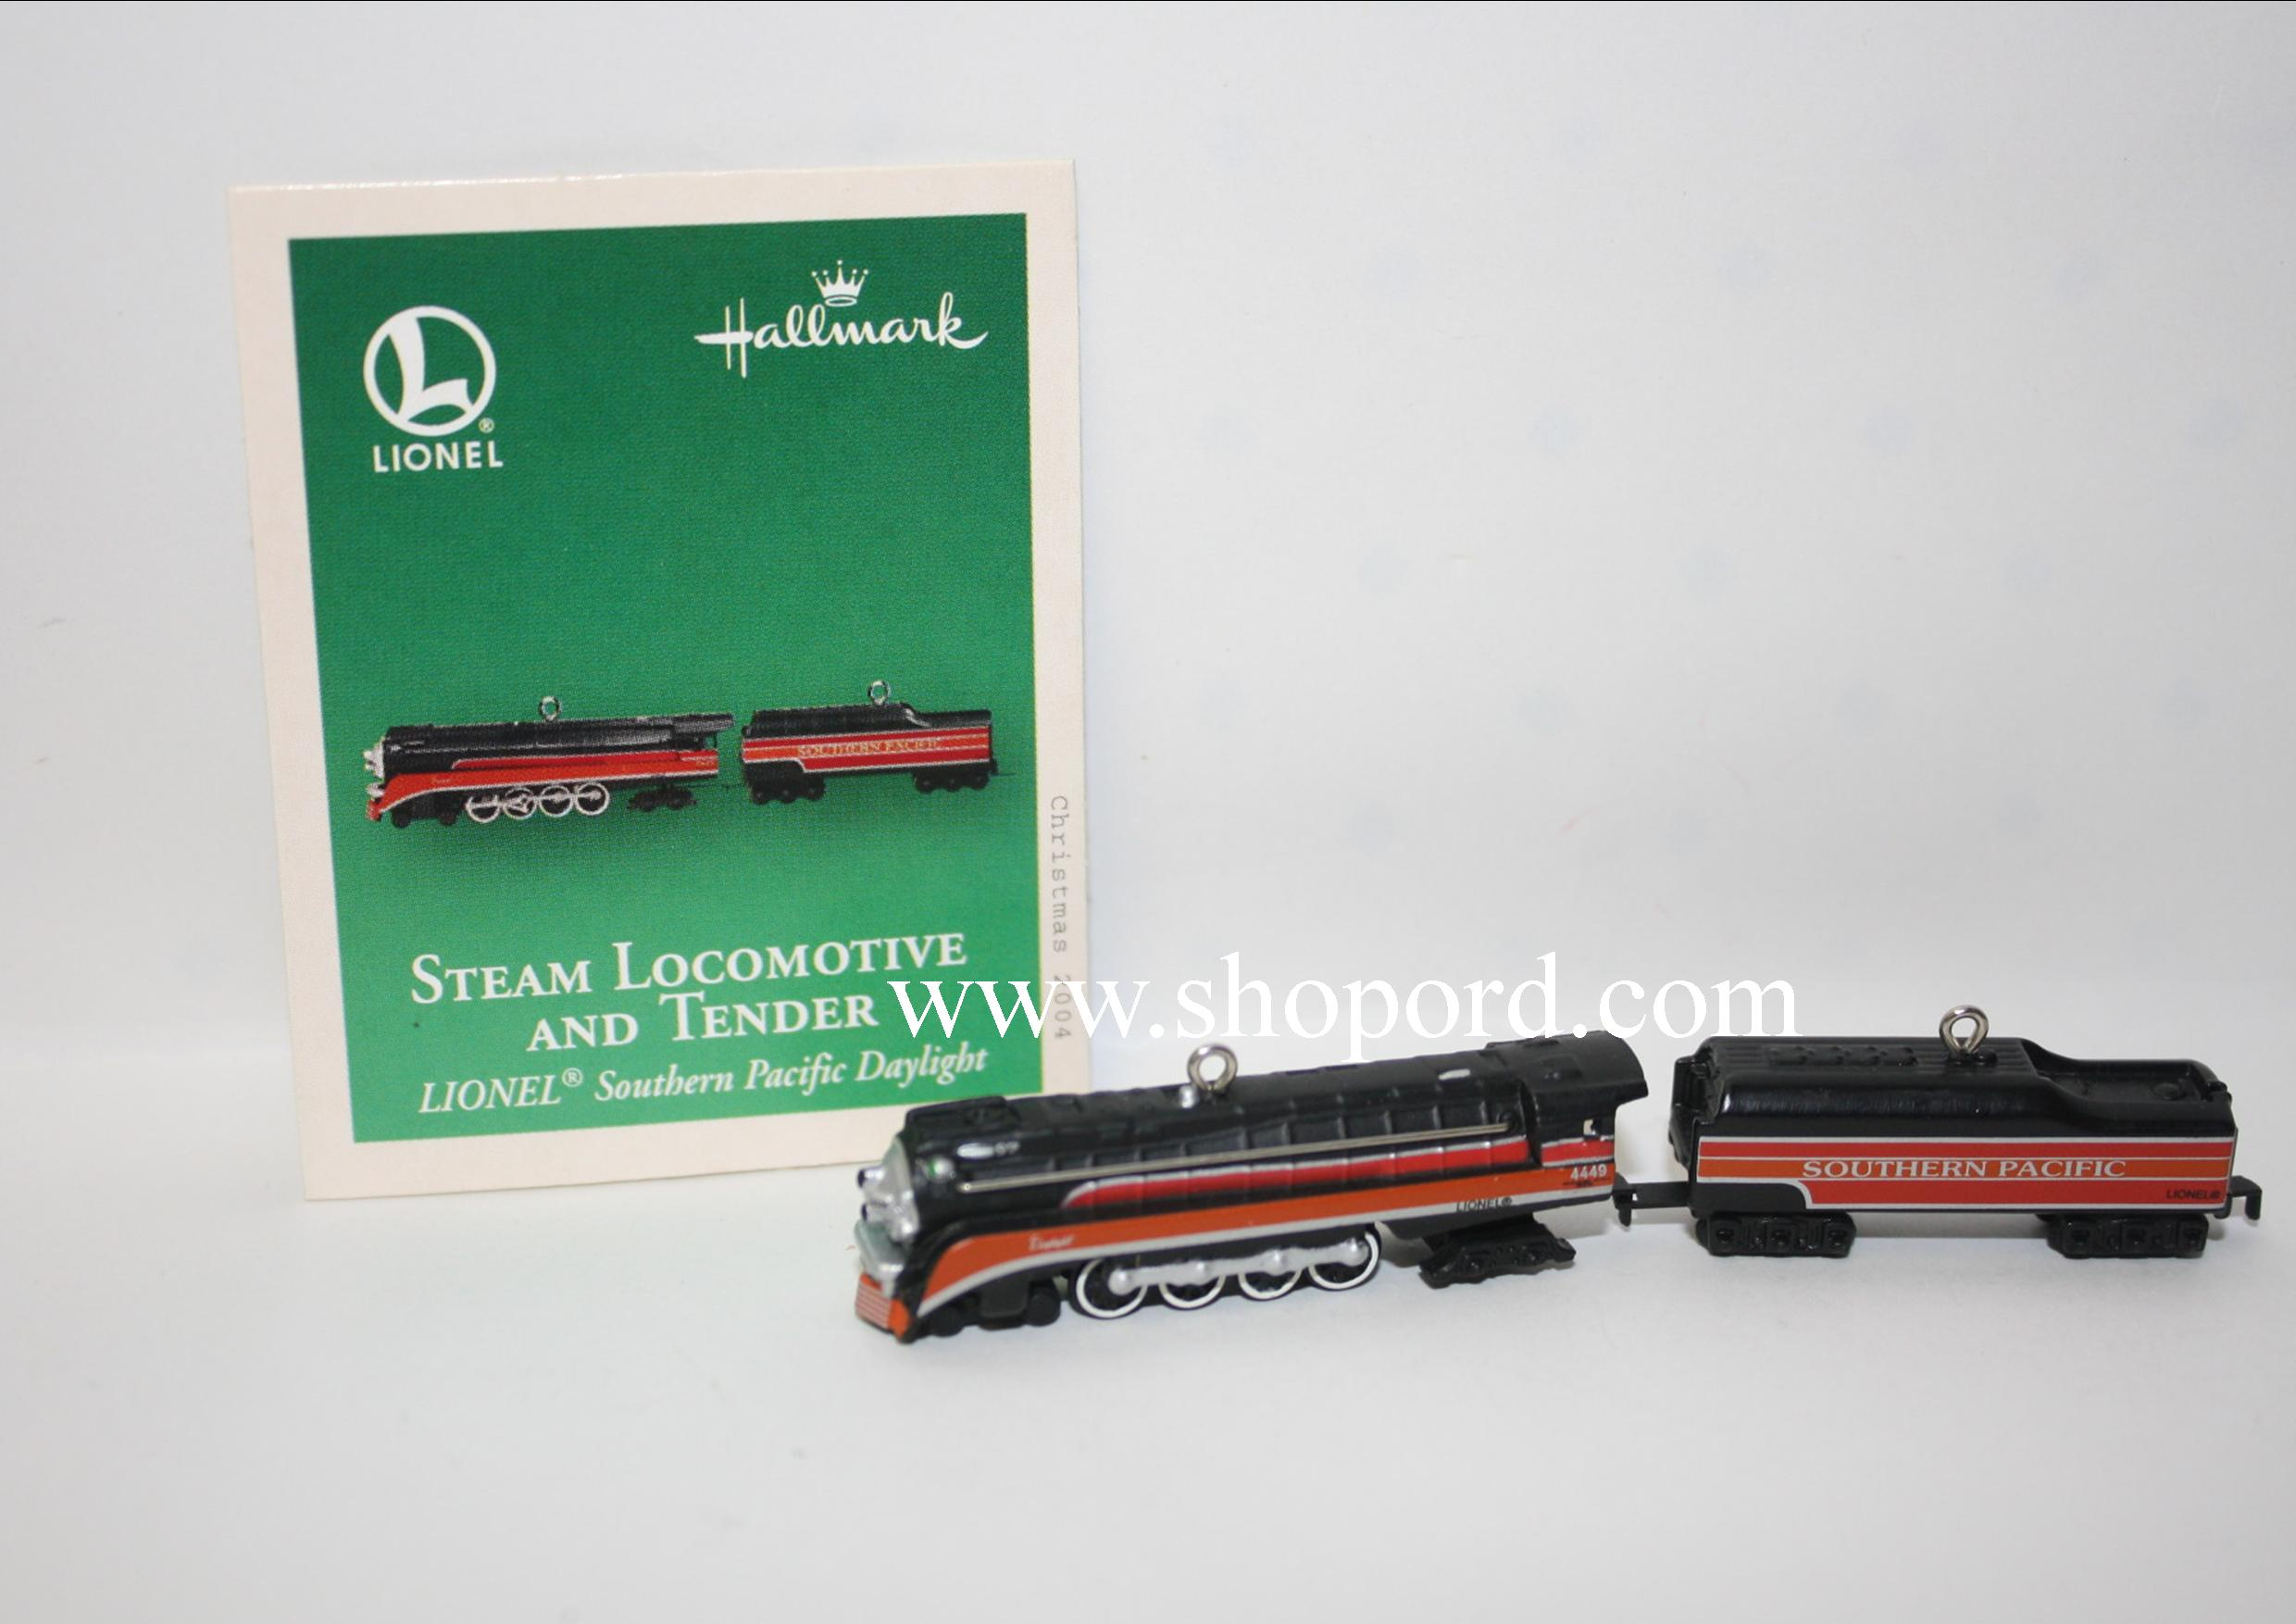 Hallmark 2004 Lionel Steam Locomotive And Tender set of 2 Lionel Southern Pacific Daylight Miniature Ornament QXM5131